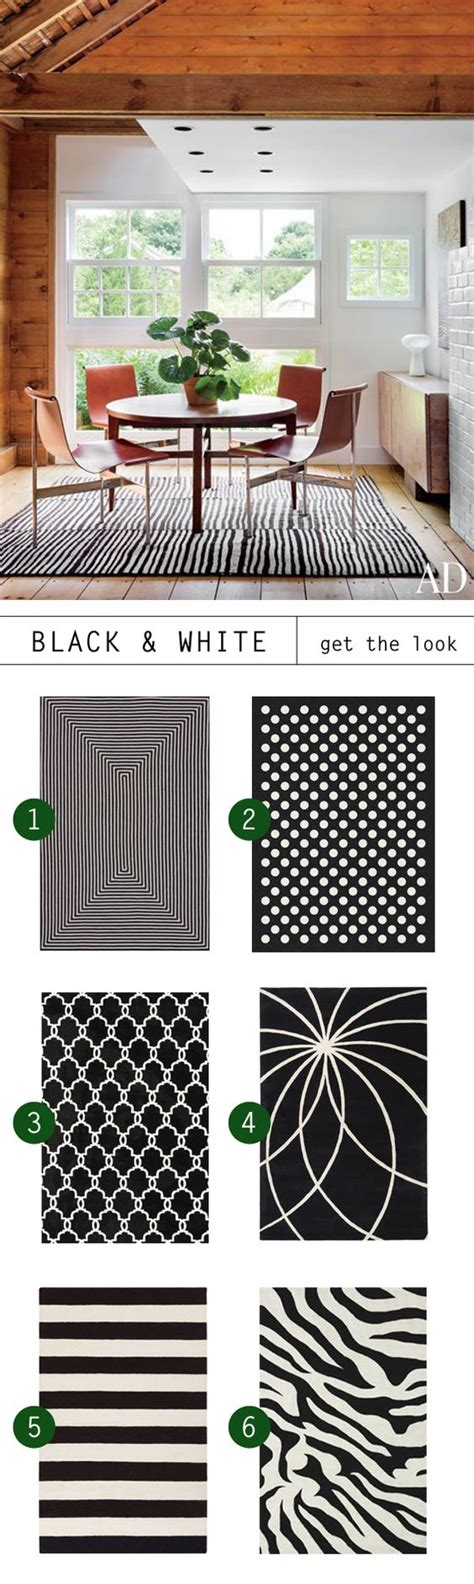 my white bedroom meg biram go bold with black and white rugs by meg biram trendcenter by rugs direct trend center by